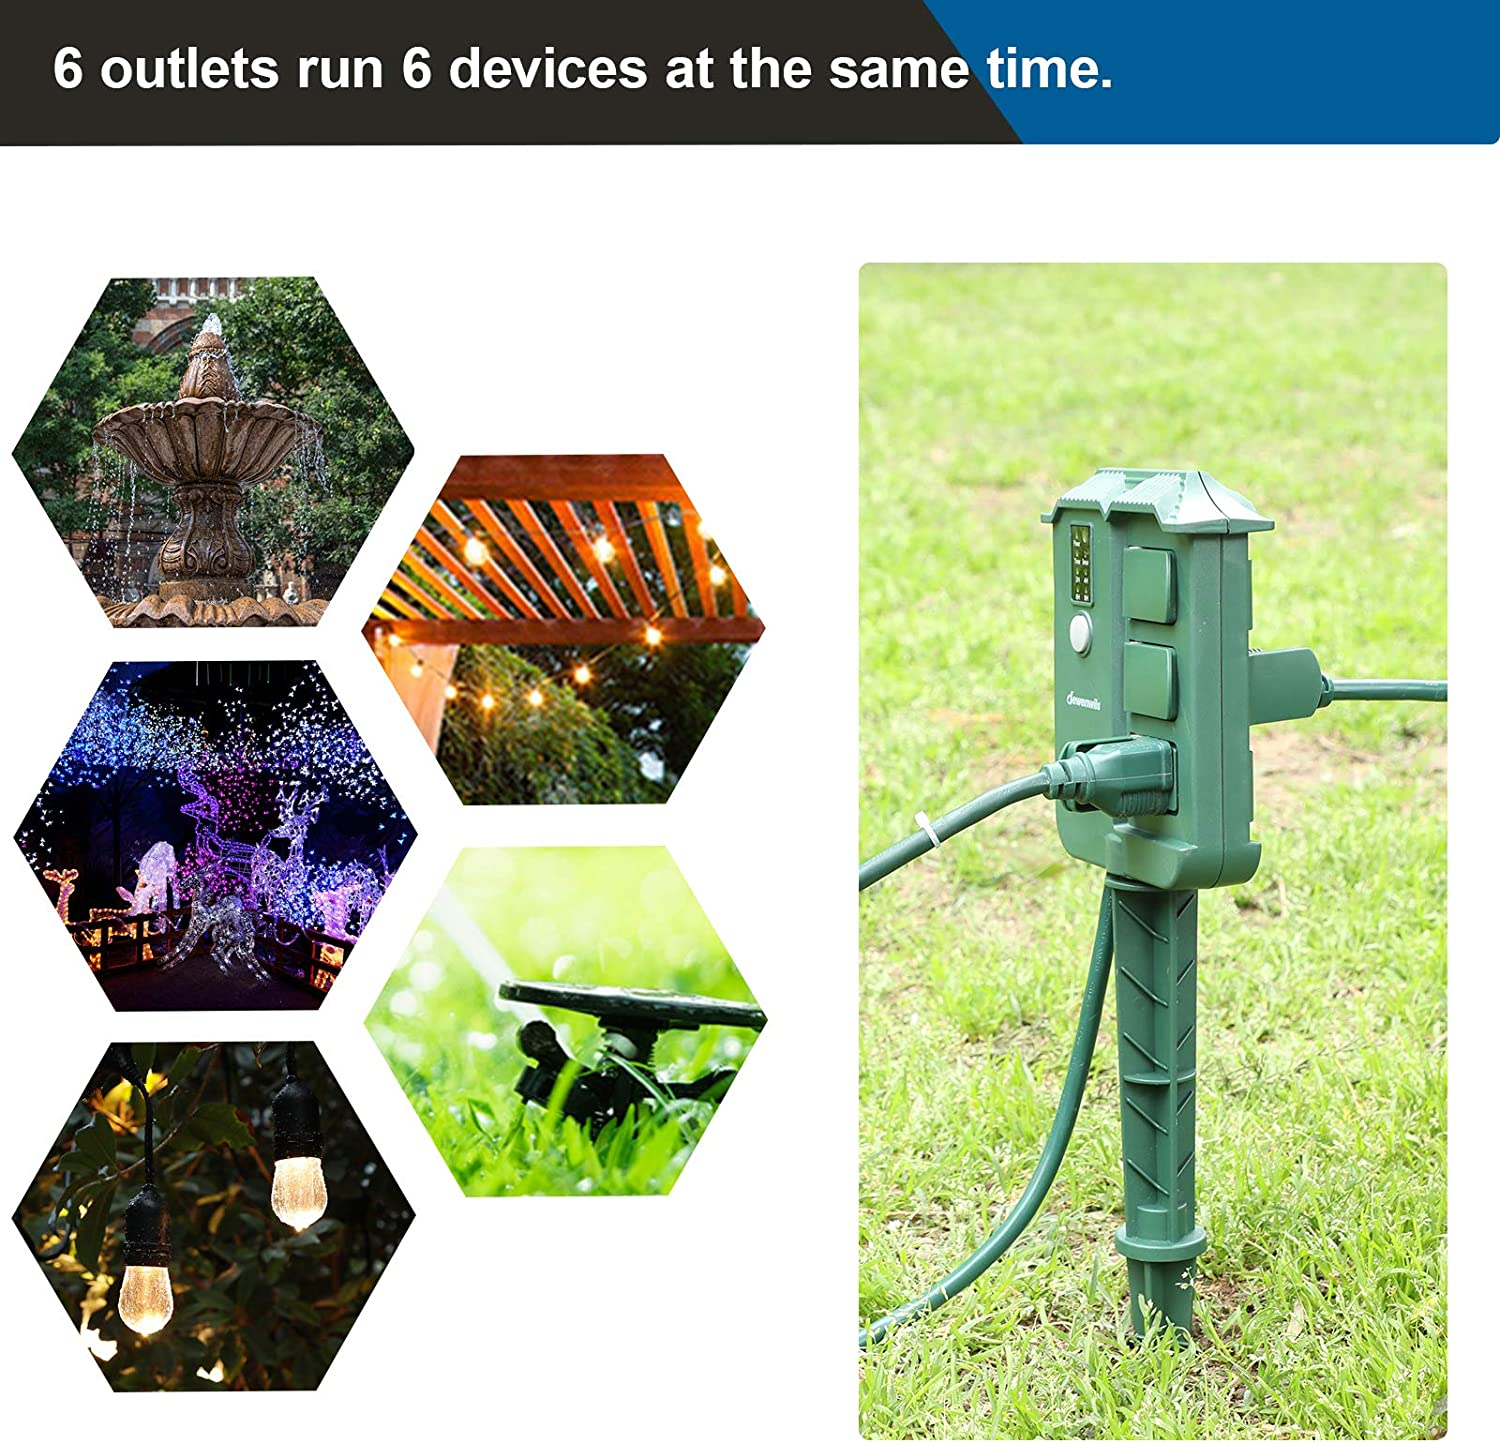 DEWENWILS Outdoor Power Strip Stake Timer with Remote, Waterproof Cover, 6 Grounded Outlets, 6 ft Extension Cord, 100 ft Remote Control, Electric Pool Timer for Christmas Lights, Ponds,13A UL Listed